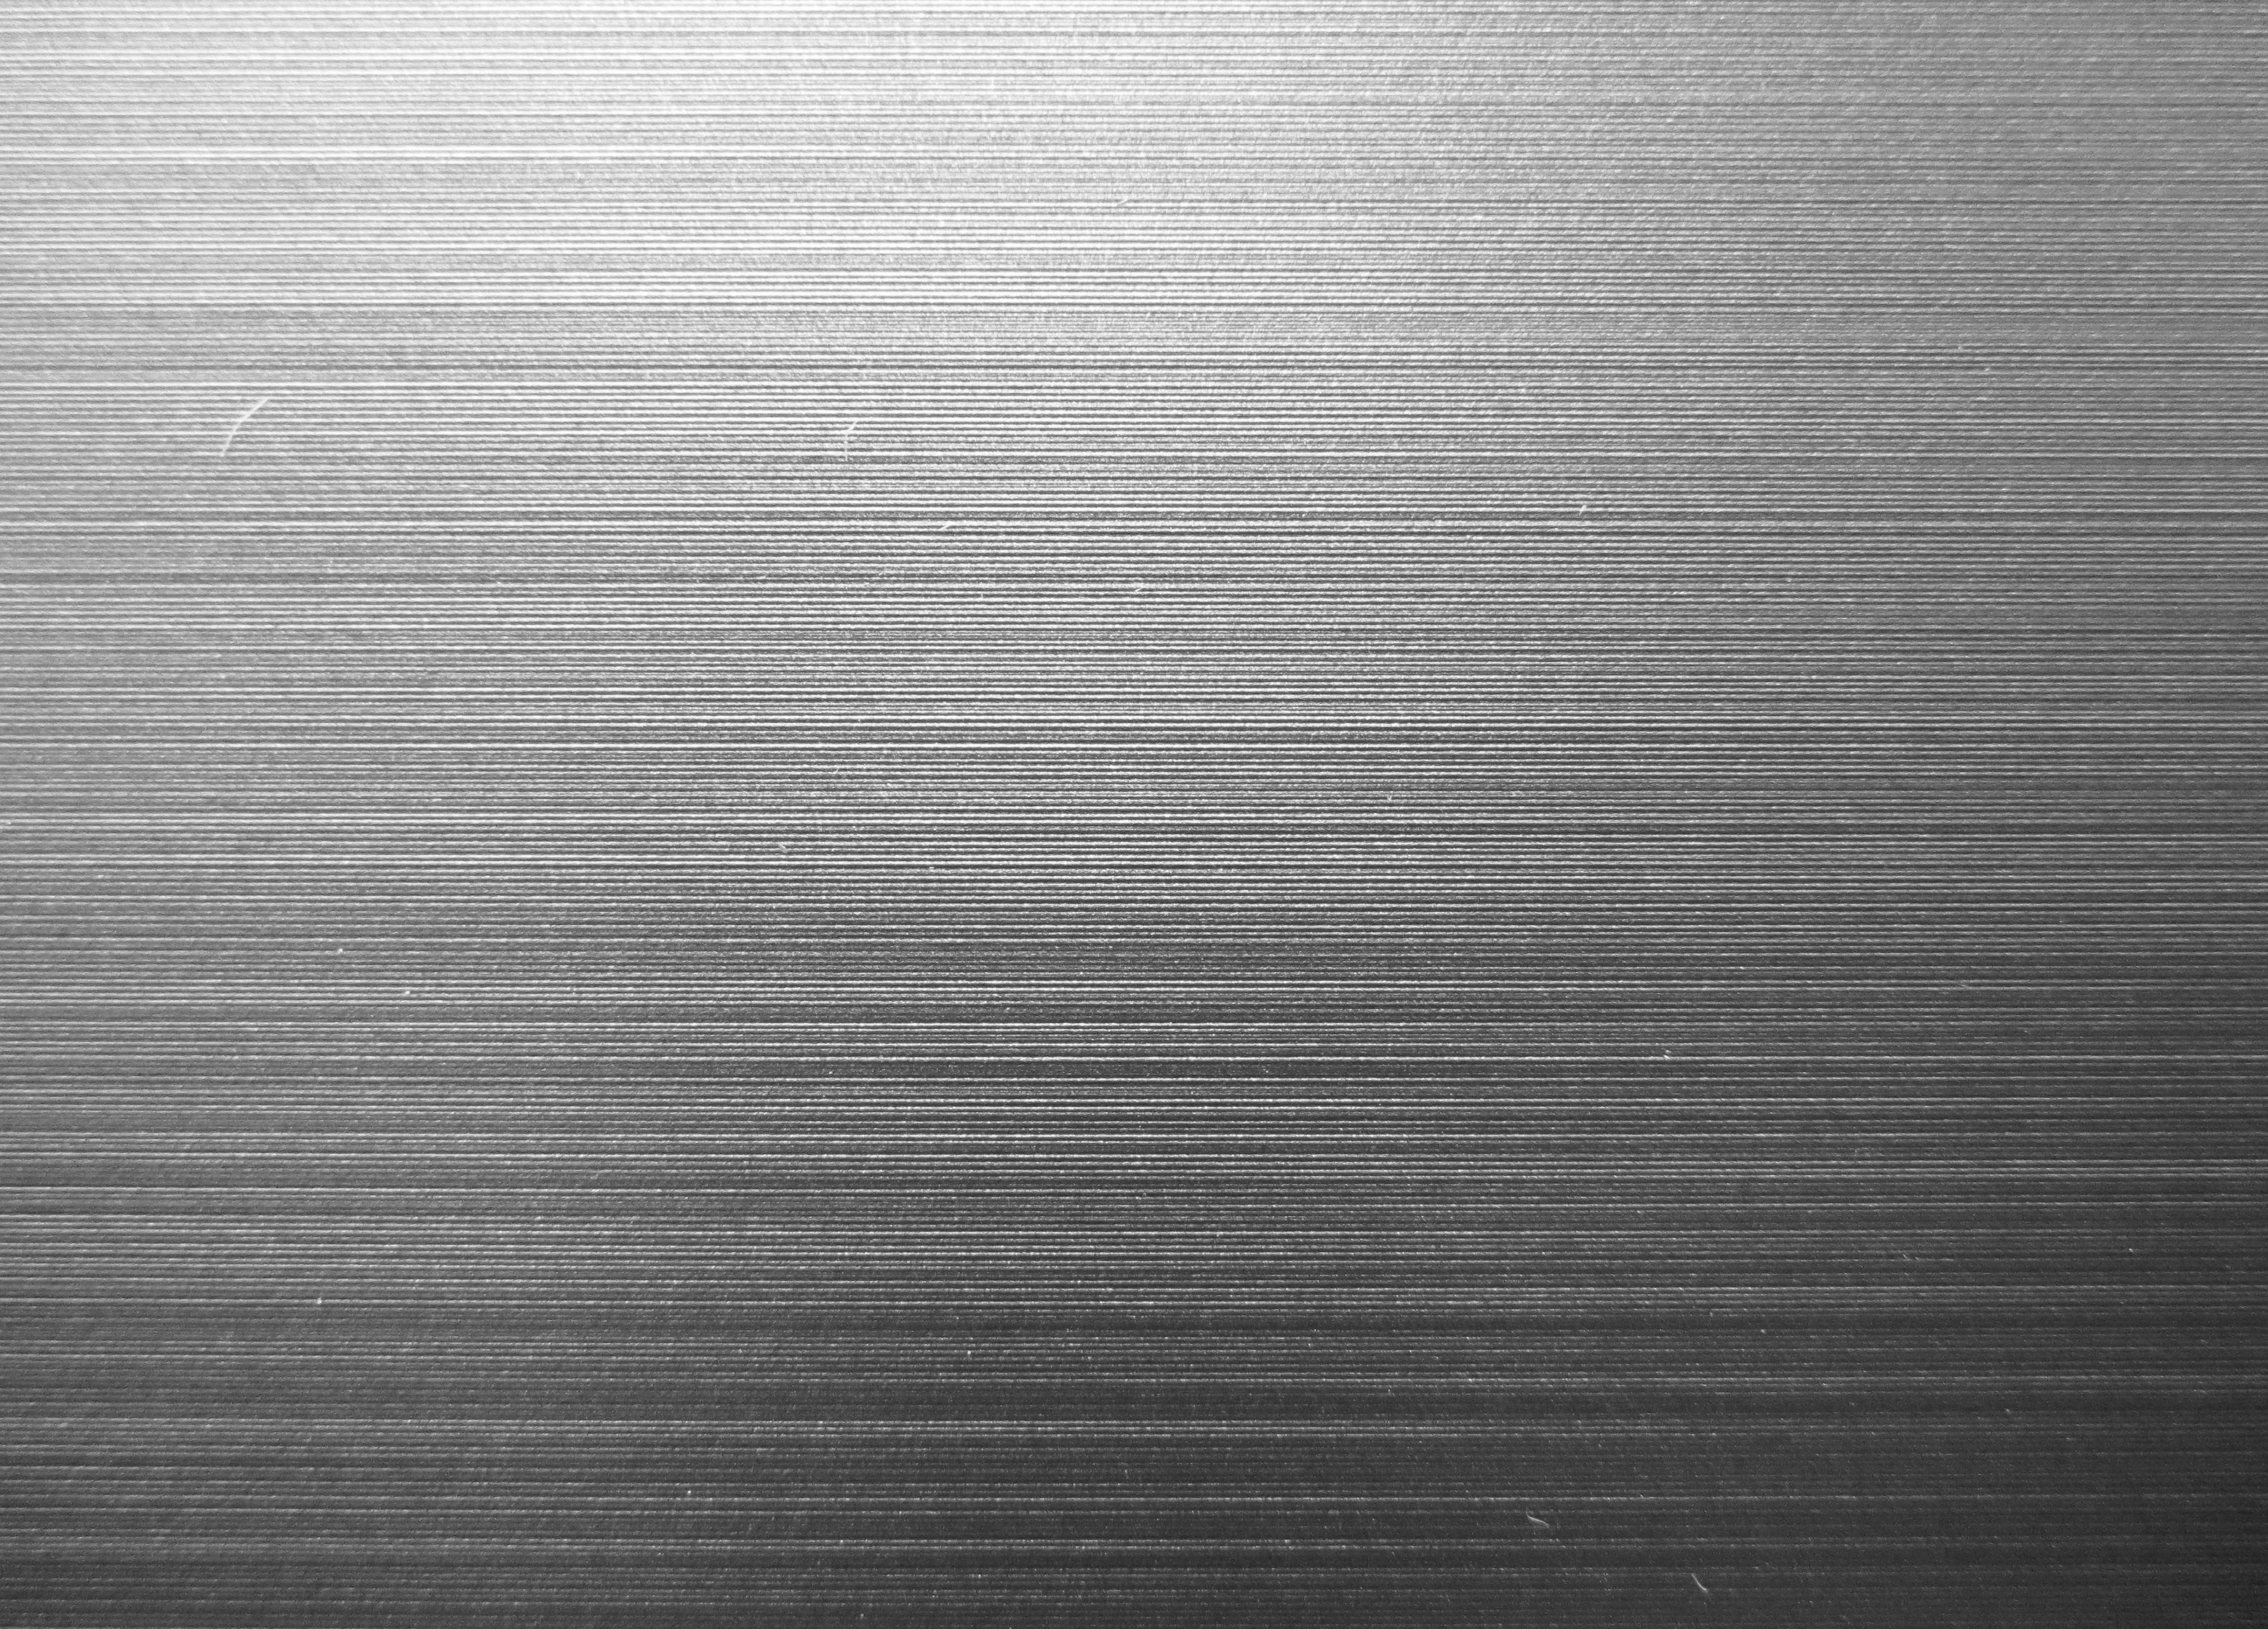 brushed silver texture metal surface thick line metallic wallpaper 4205x3020